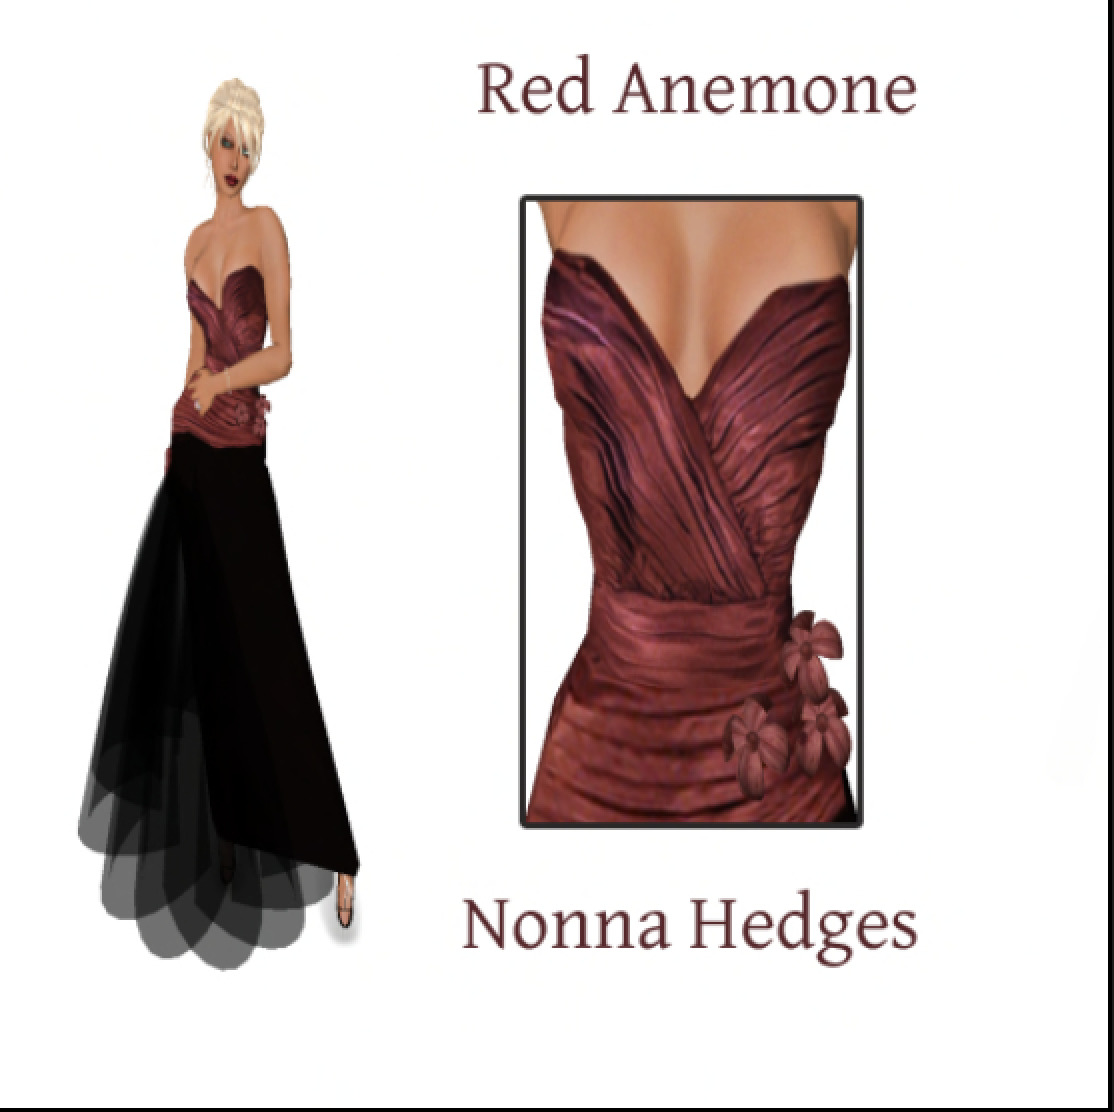 Nonna Hedges Gown, 2007